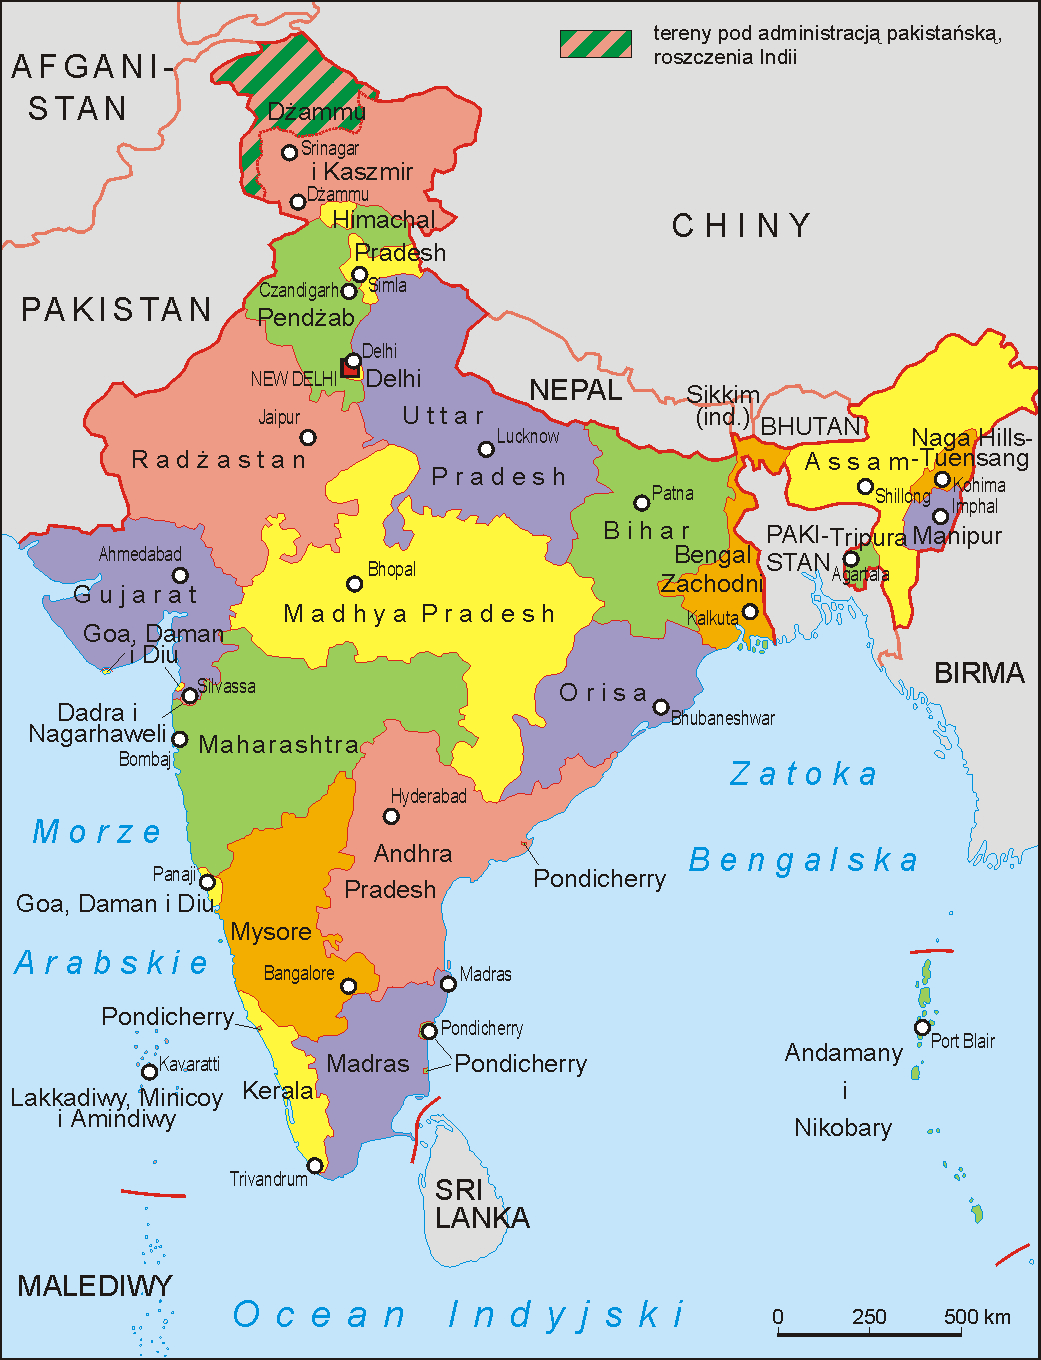 India Map With States Pdf Goa, Daman and Diu   Wikipedia